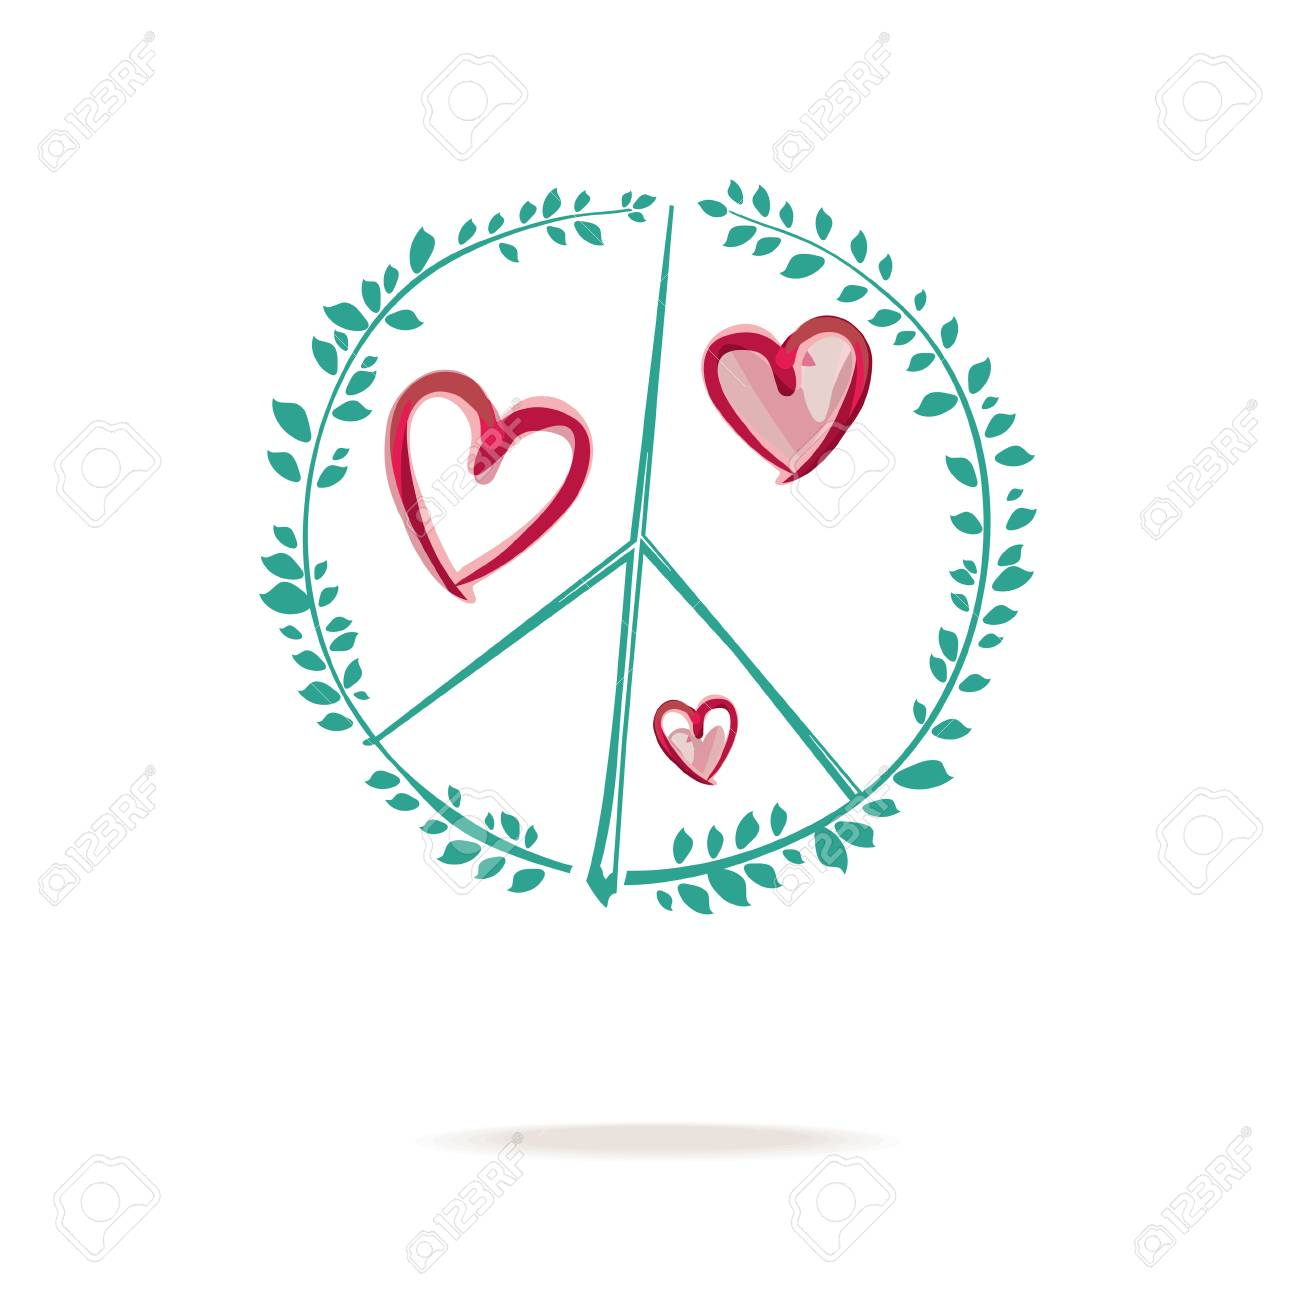 Symbol of peace  Peace sign drawing consists of sprigs with green